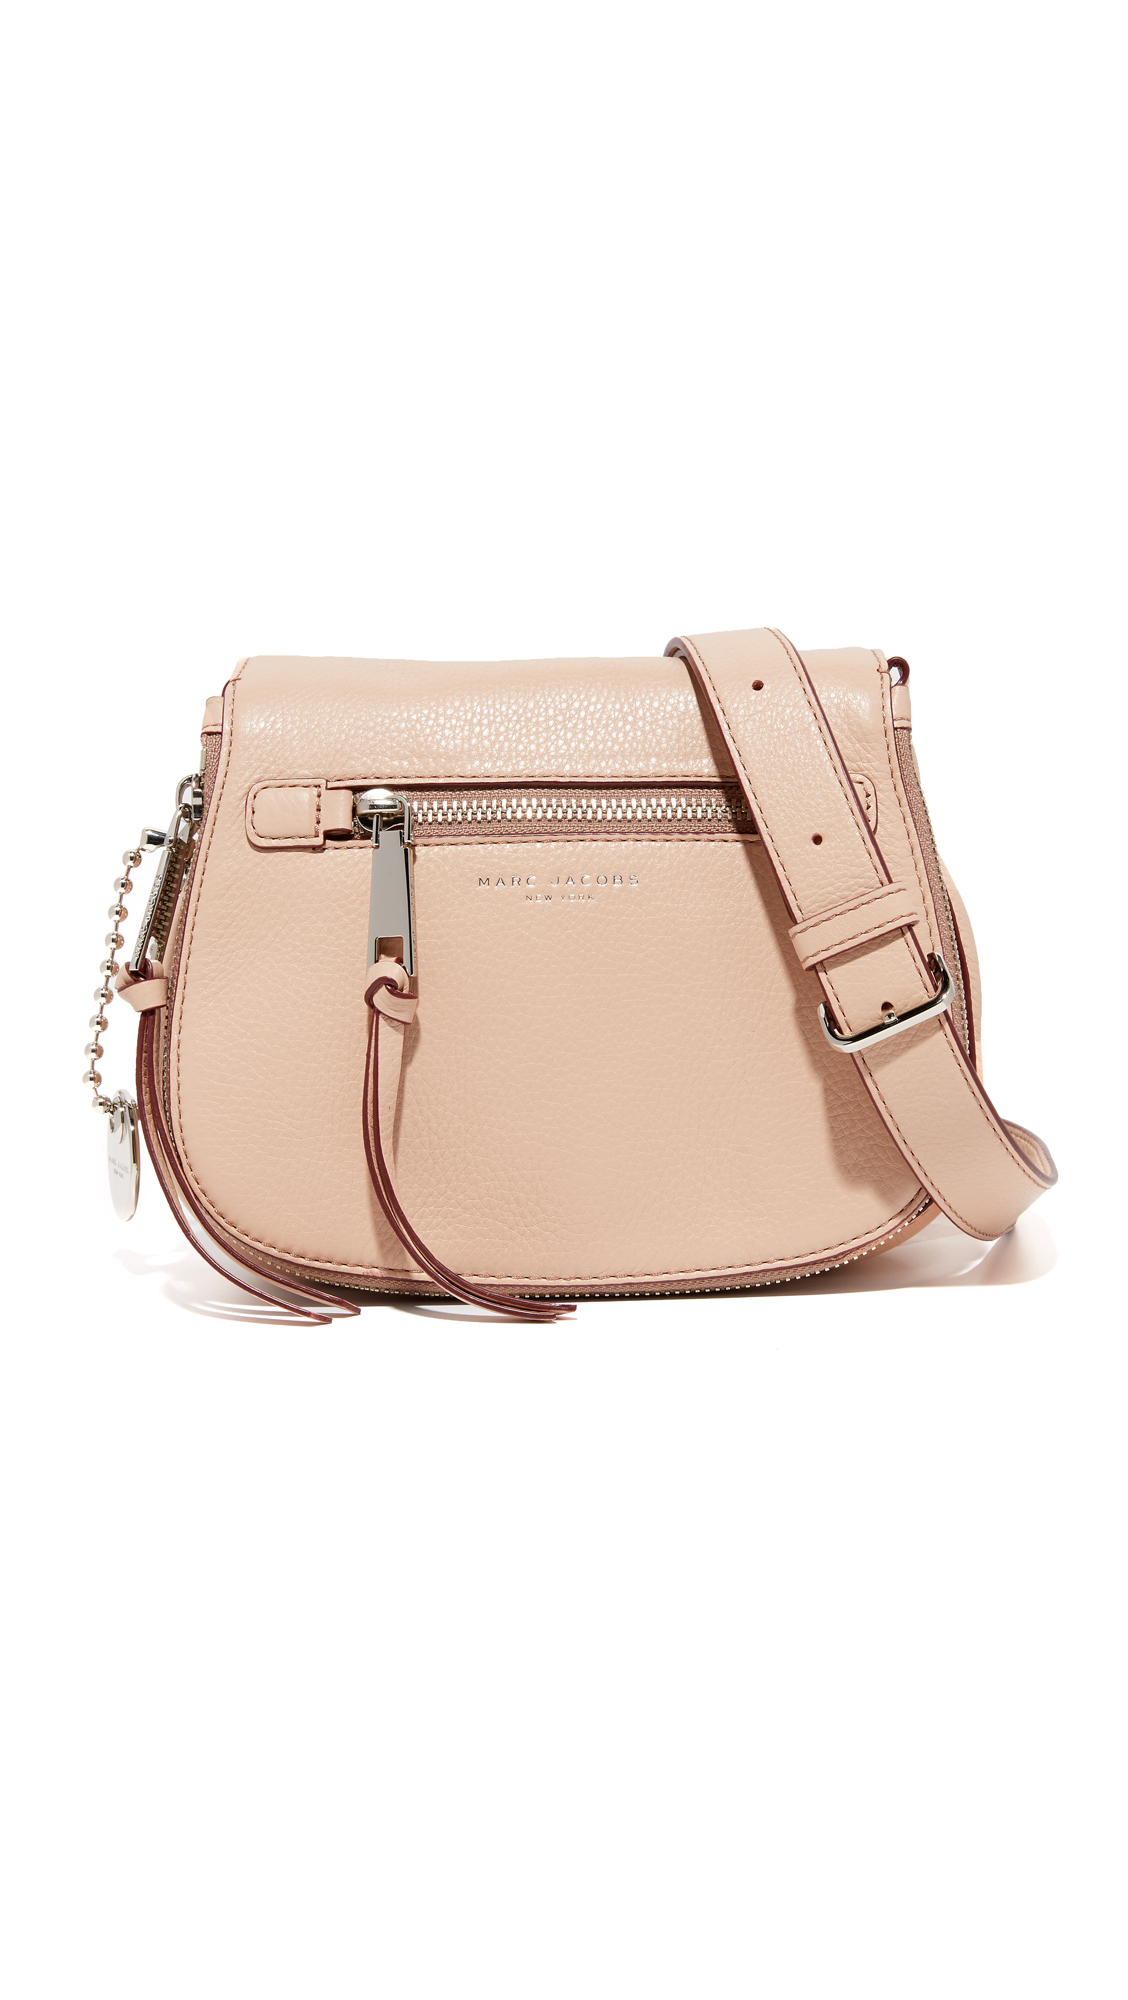 5e8df4d43bbd Lyst - Marc Jacobs Recruit Small Saddle Bag in Natural